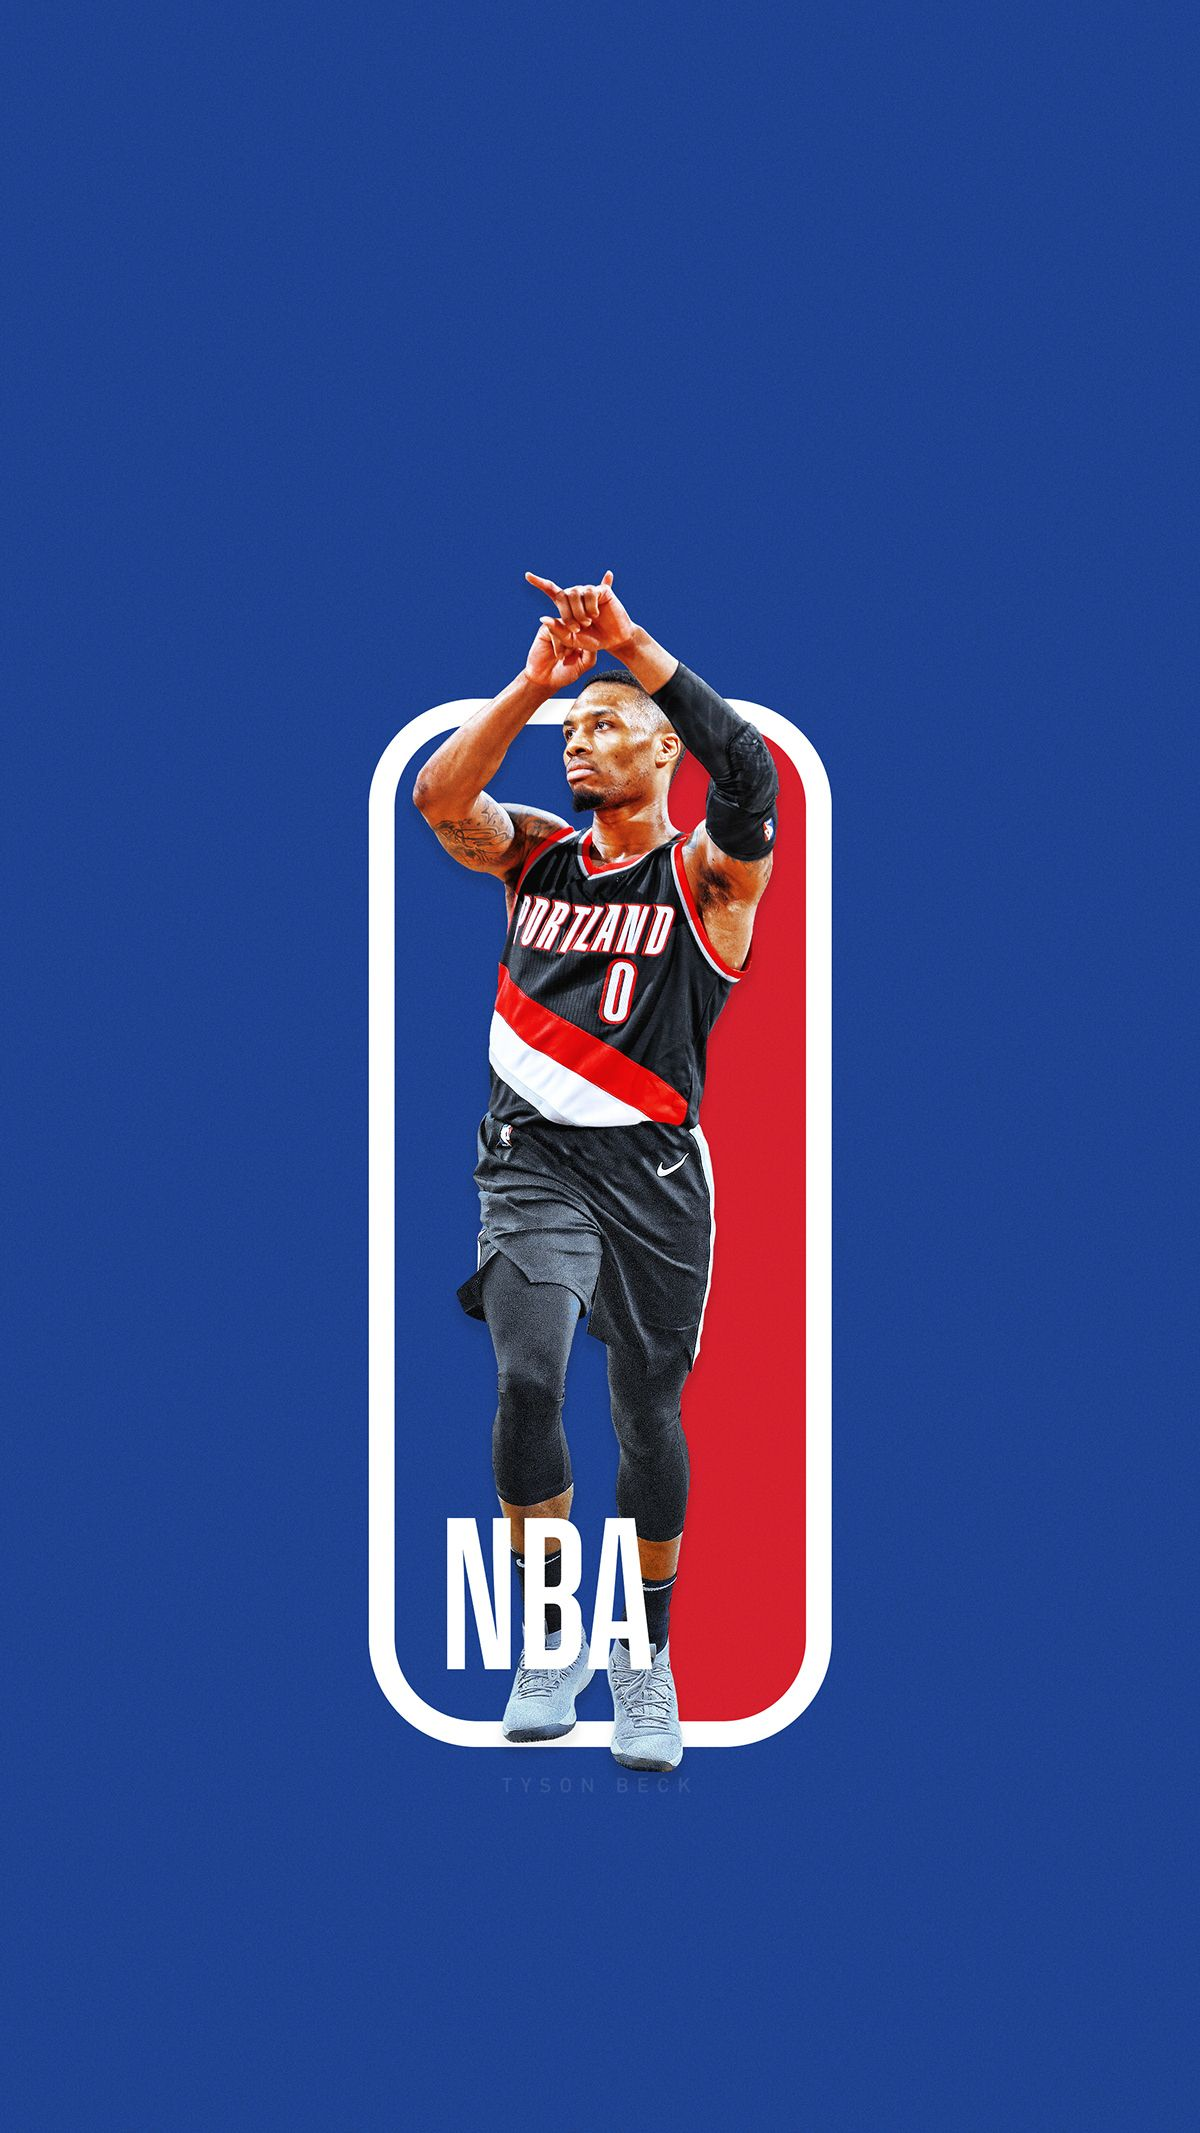 The Next NBA logo? NBA Logoman Series on Behance